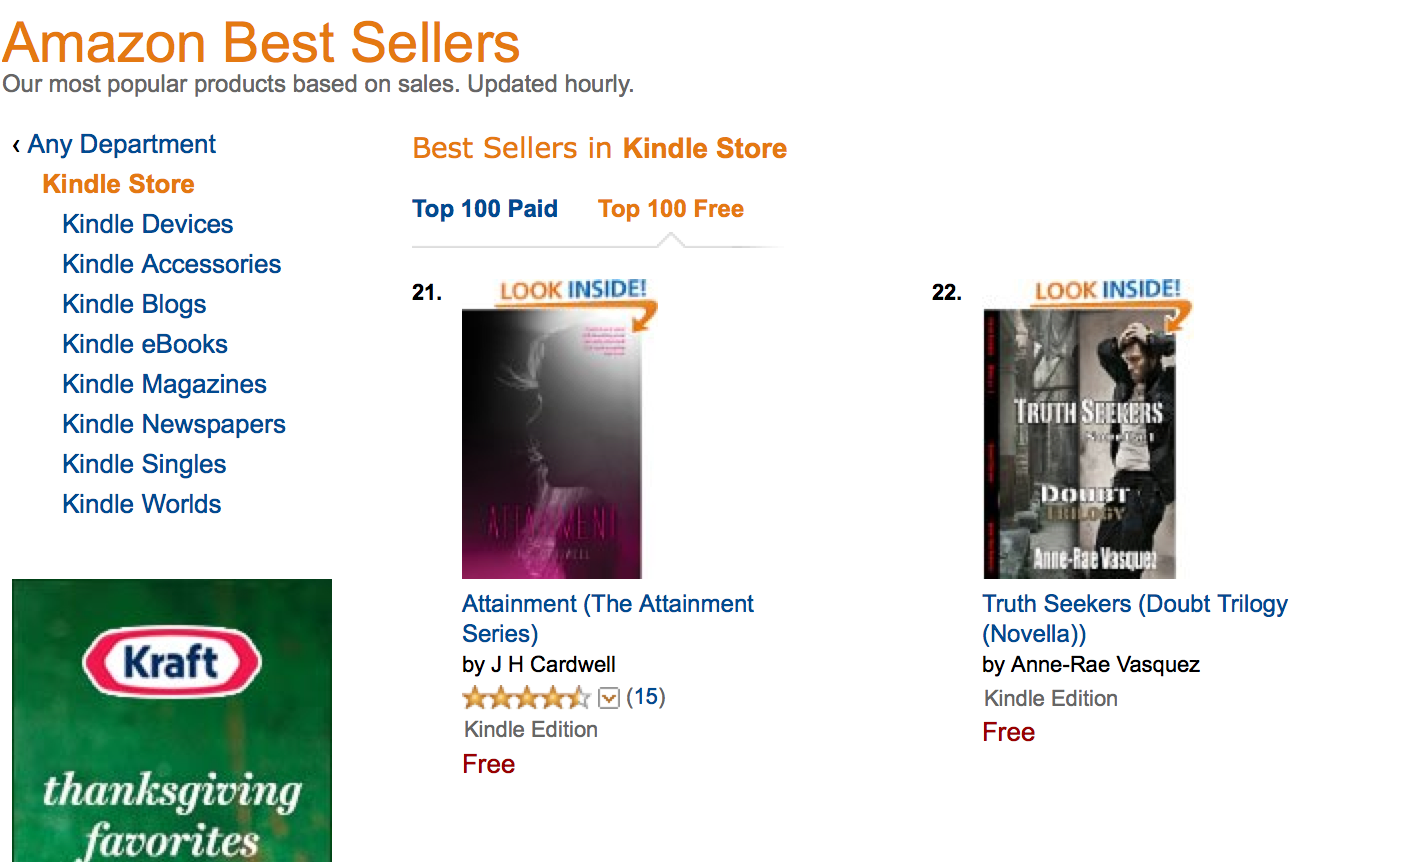 #21 in all Kindle Store